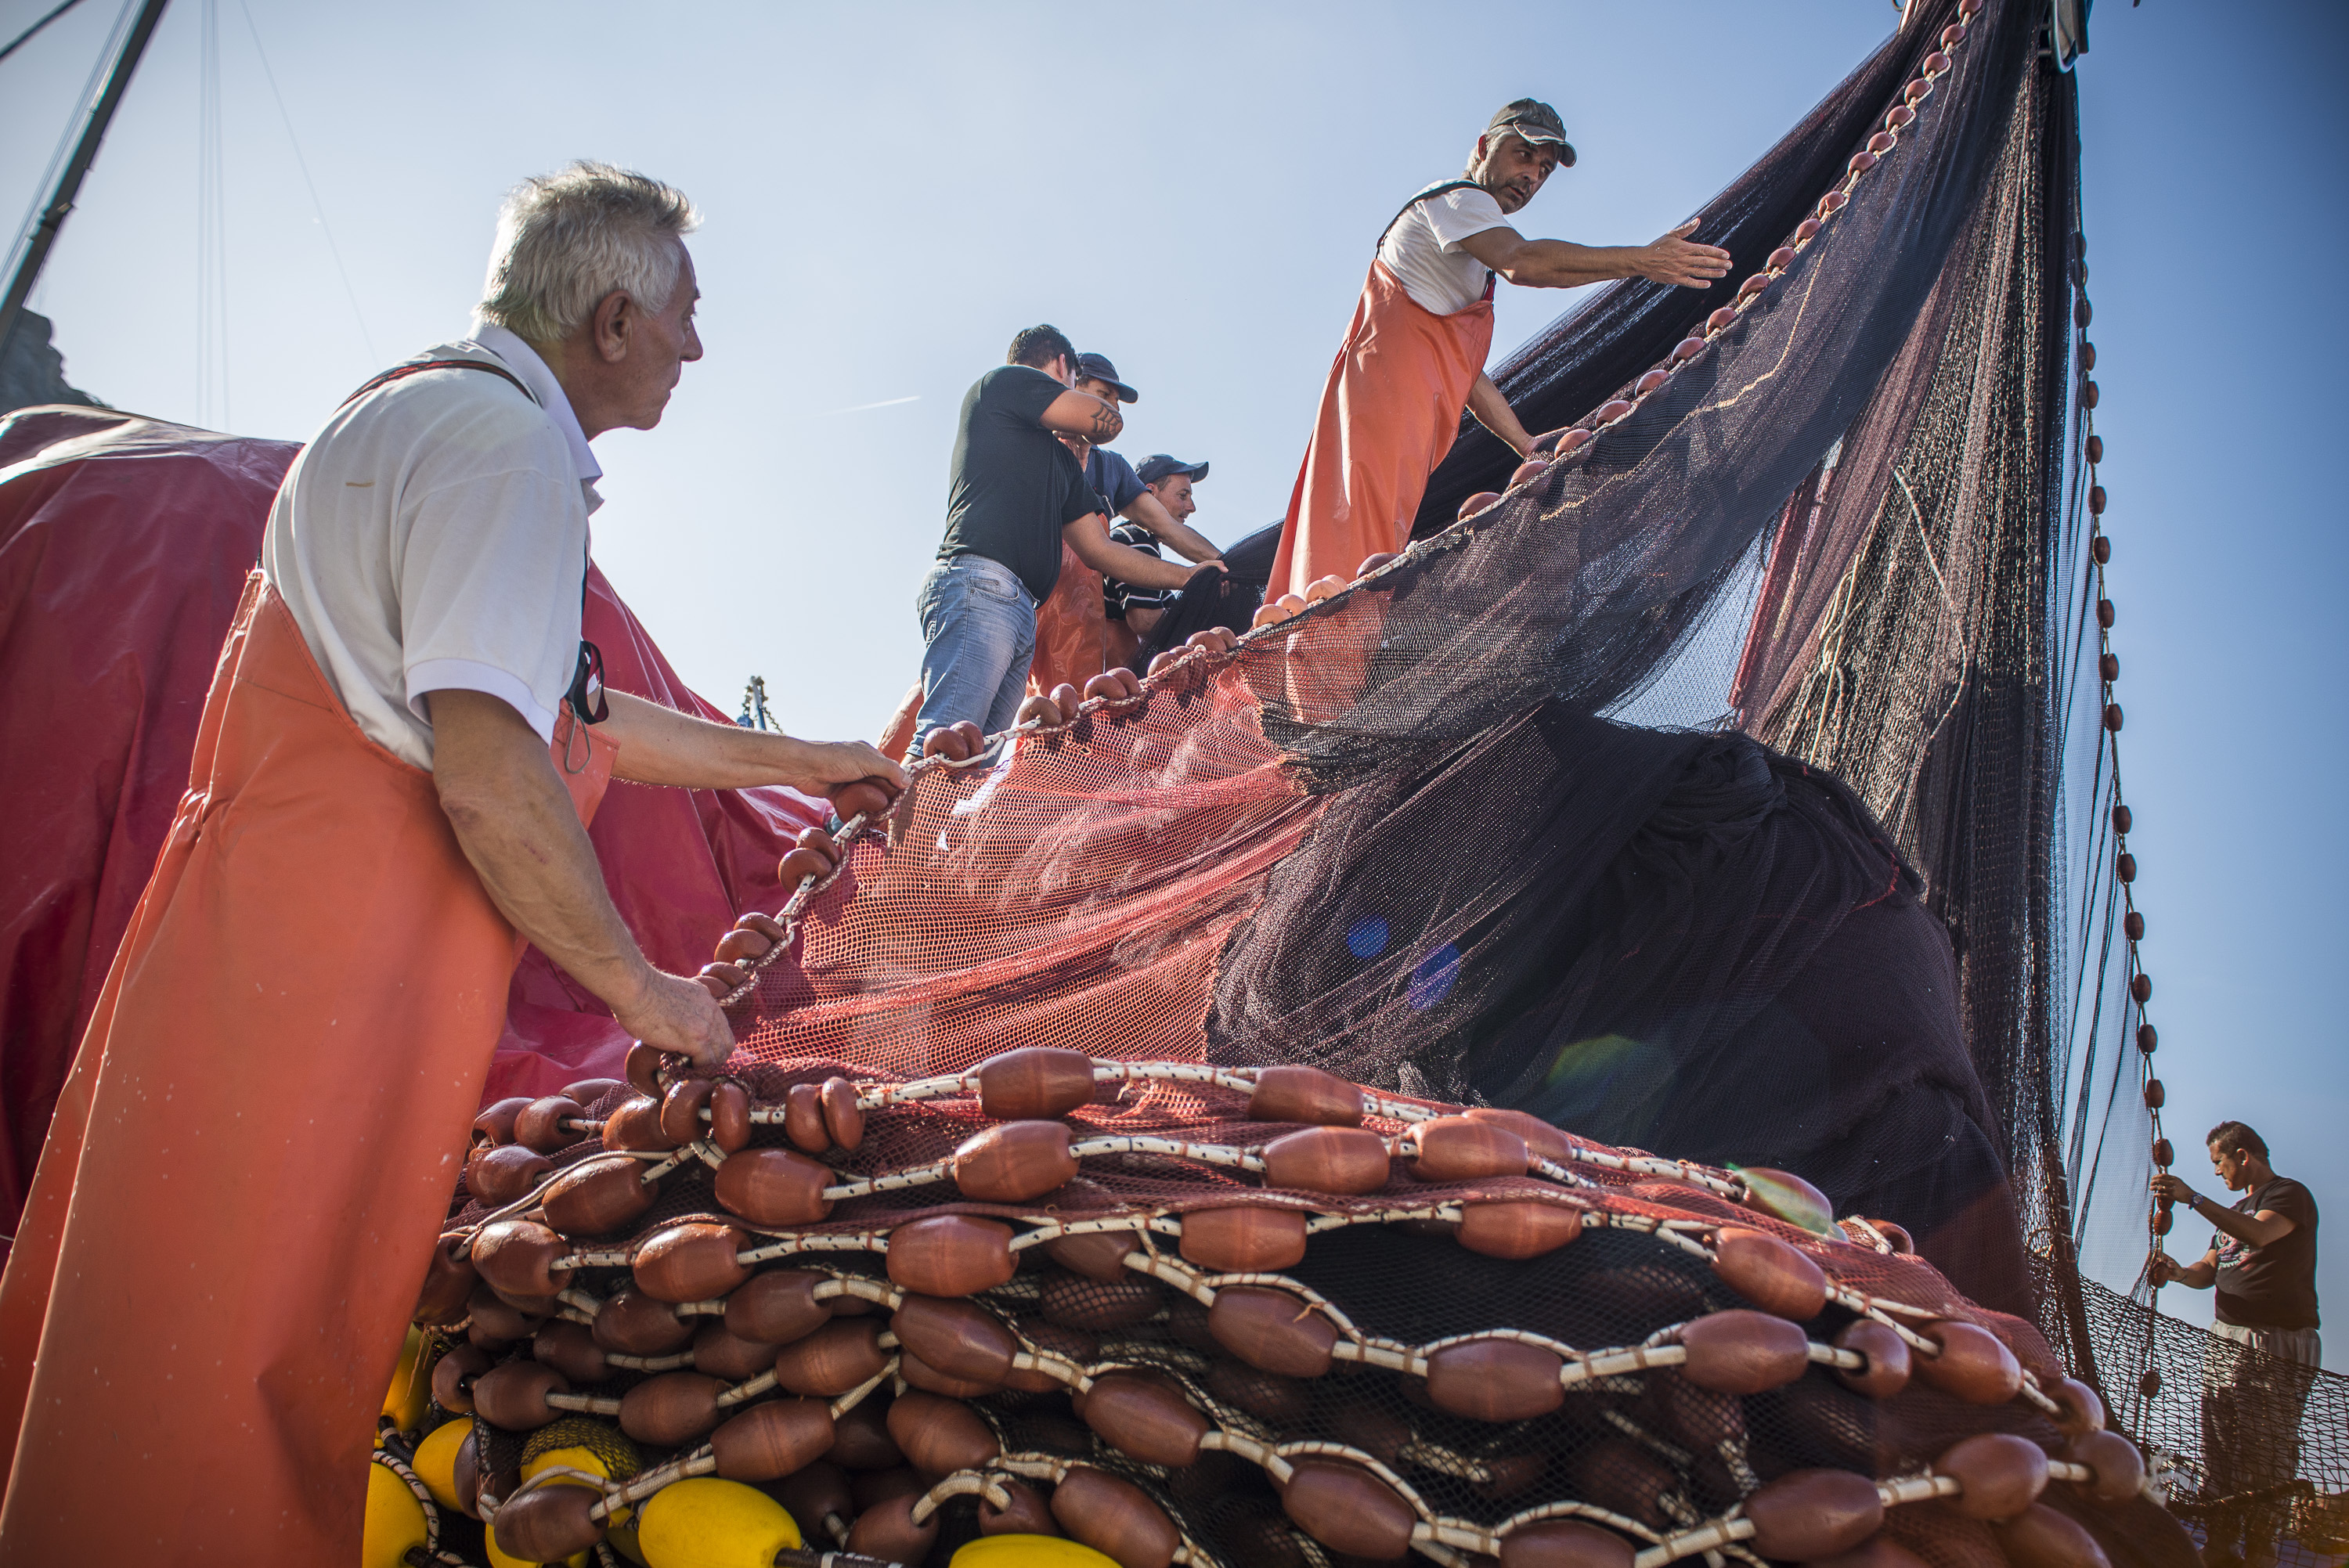 Crew of a local fishing vessel storing fishing nets to dry them and use them in the next spot of fishing in Procida, Italy